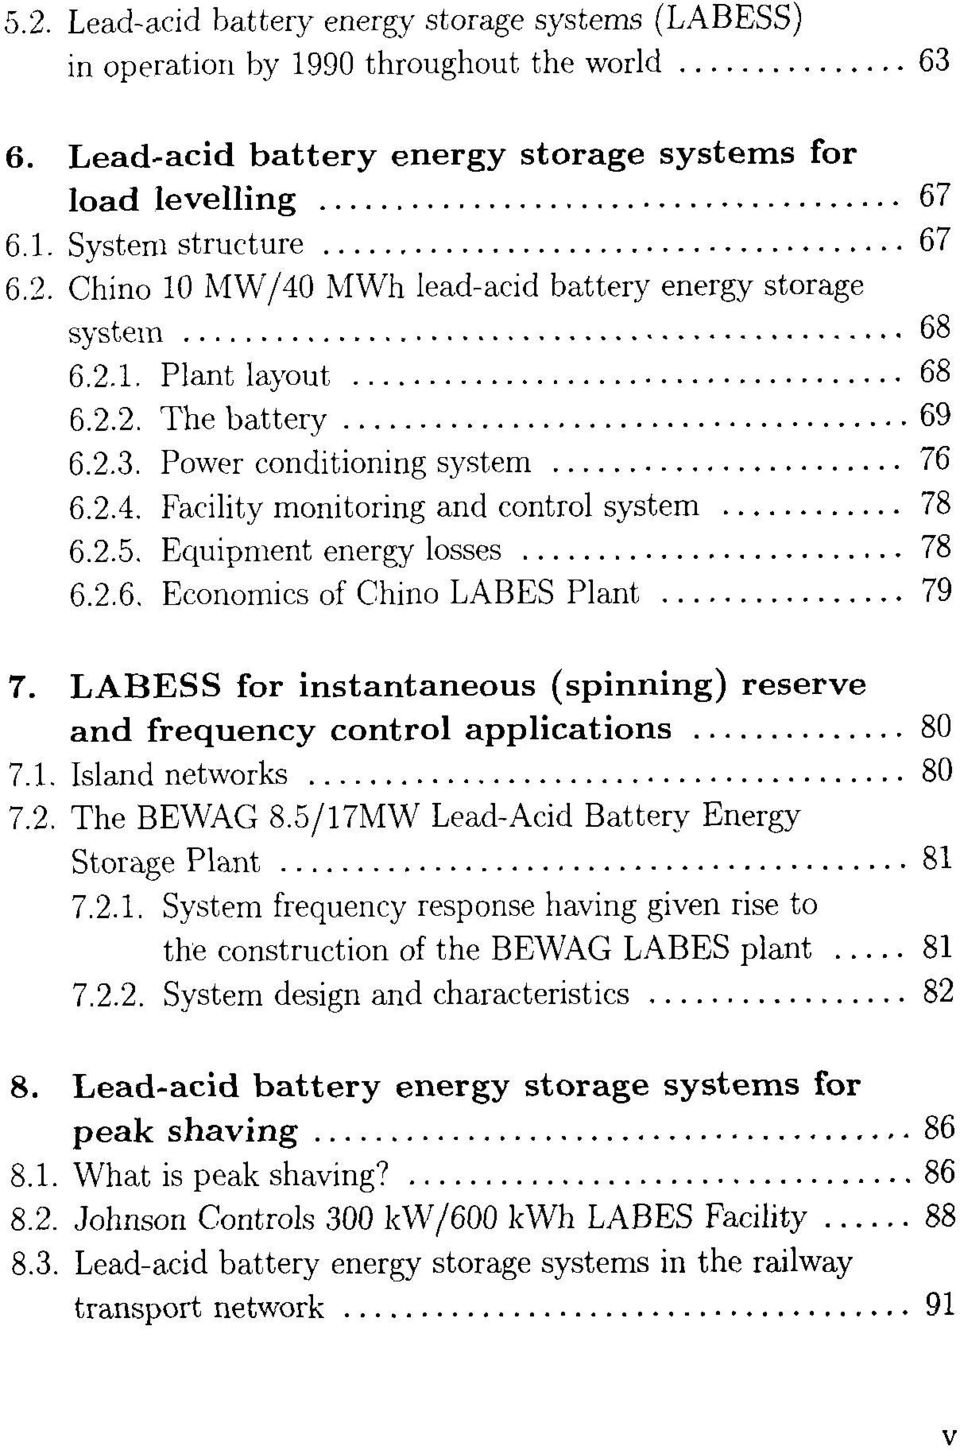 .. 79 7. LABESS for instantaneous (spinning) reserve and frequency control applications... 80 7.1. Island networks... 80 7.2. The BEWAG 8.5/17MW Lead-Acid Battery Energy Storage Plant... 81 7.2.1. System frequency response having given rise to the construction of the BEWAG LABES plant.